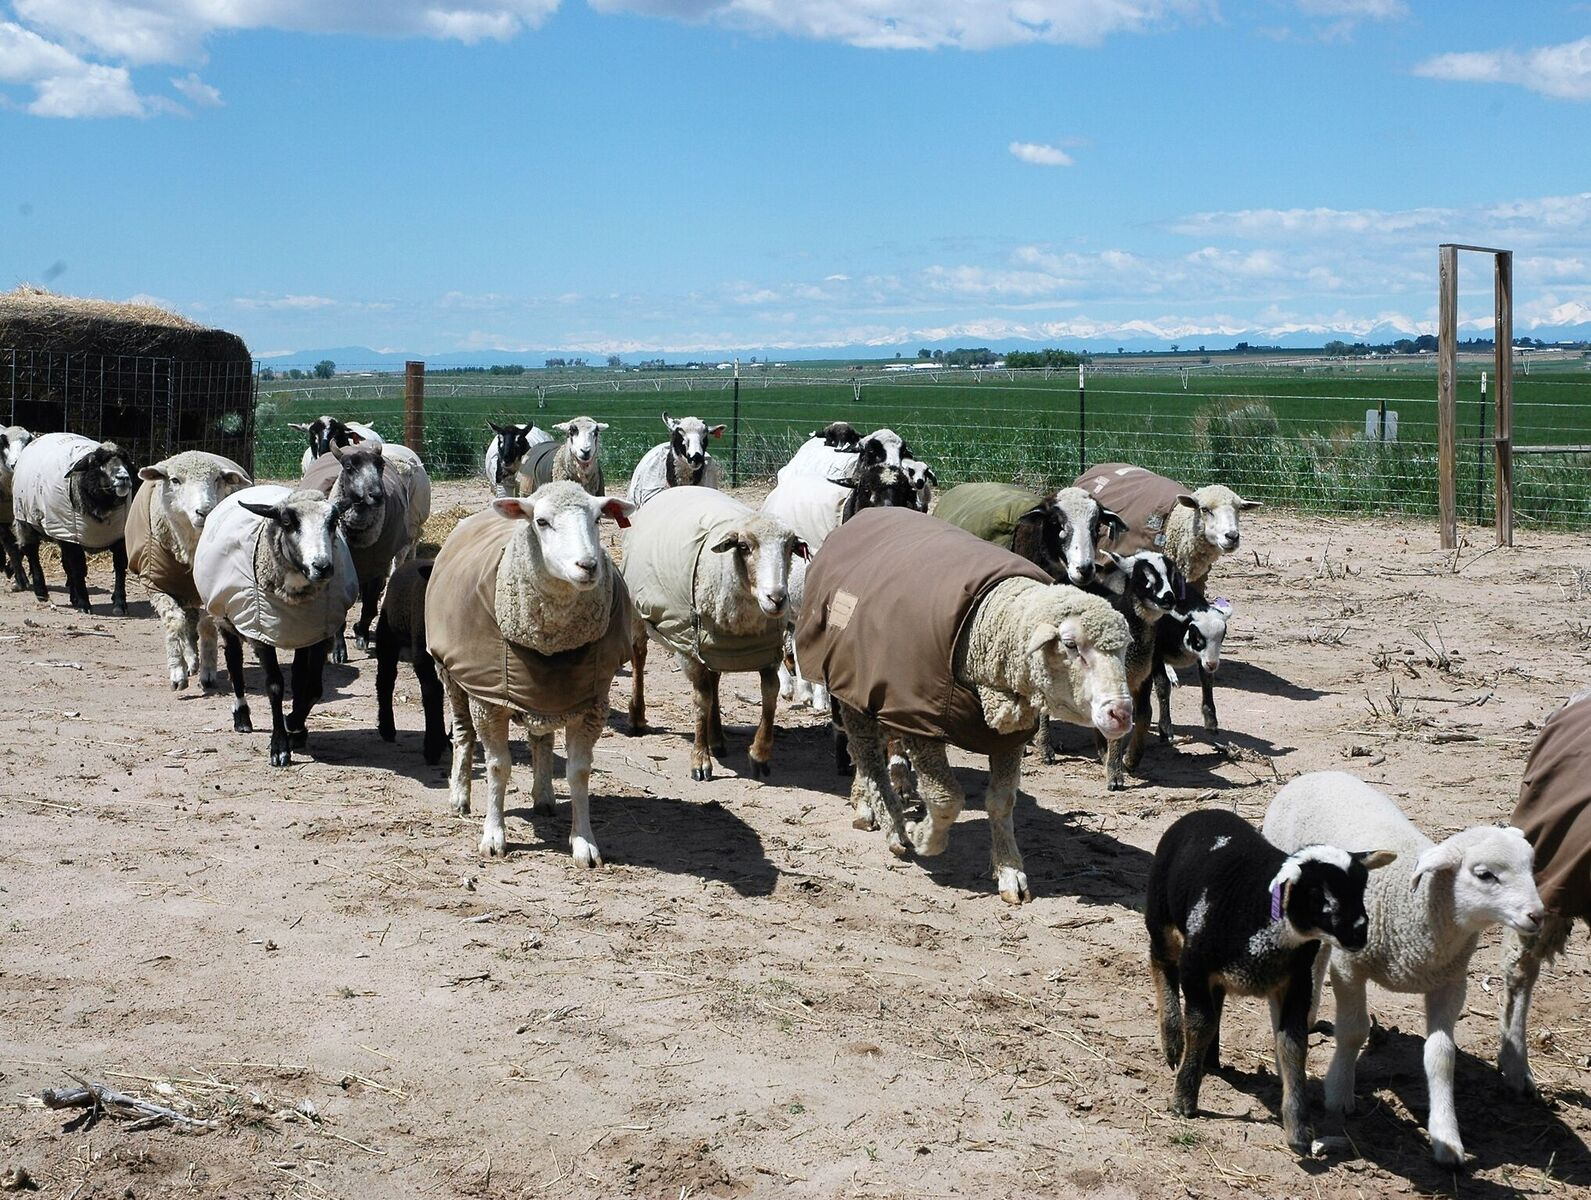 After every sheep is cared for, they head back out to pasture.